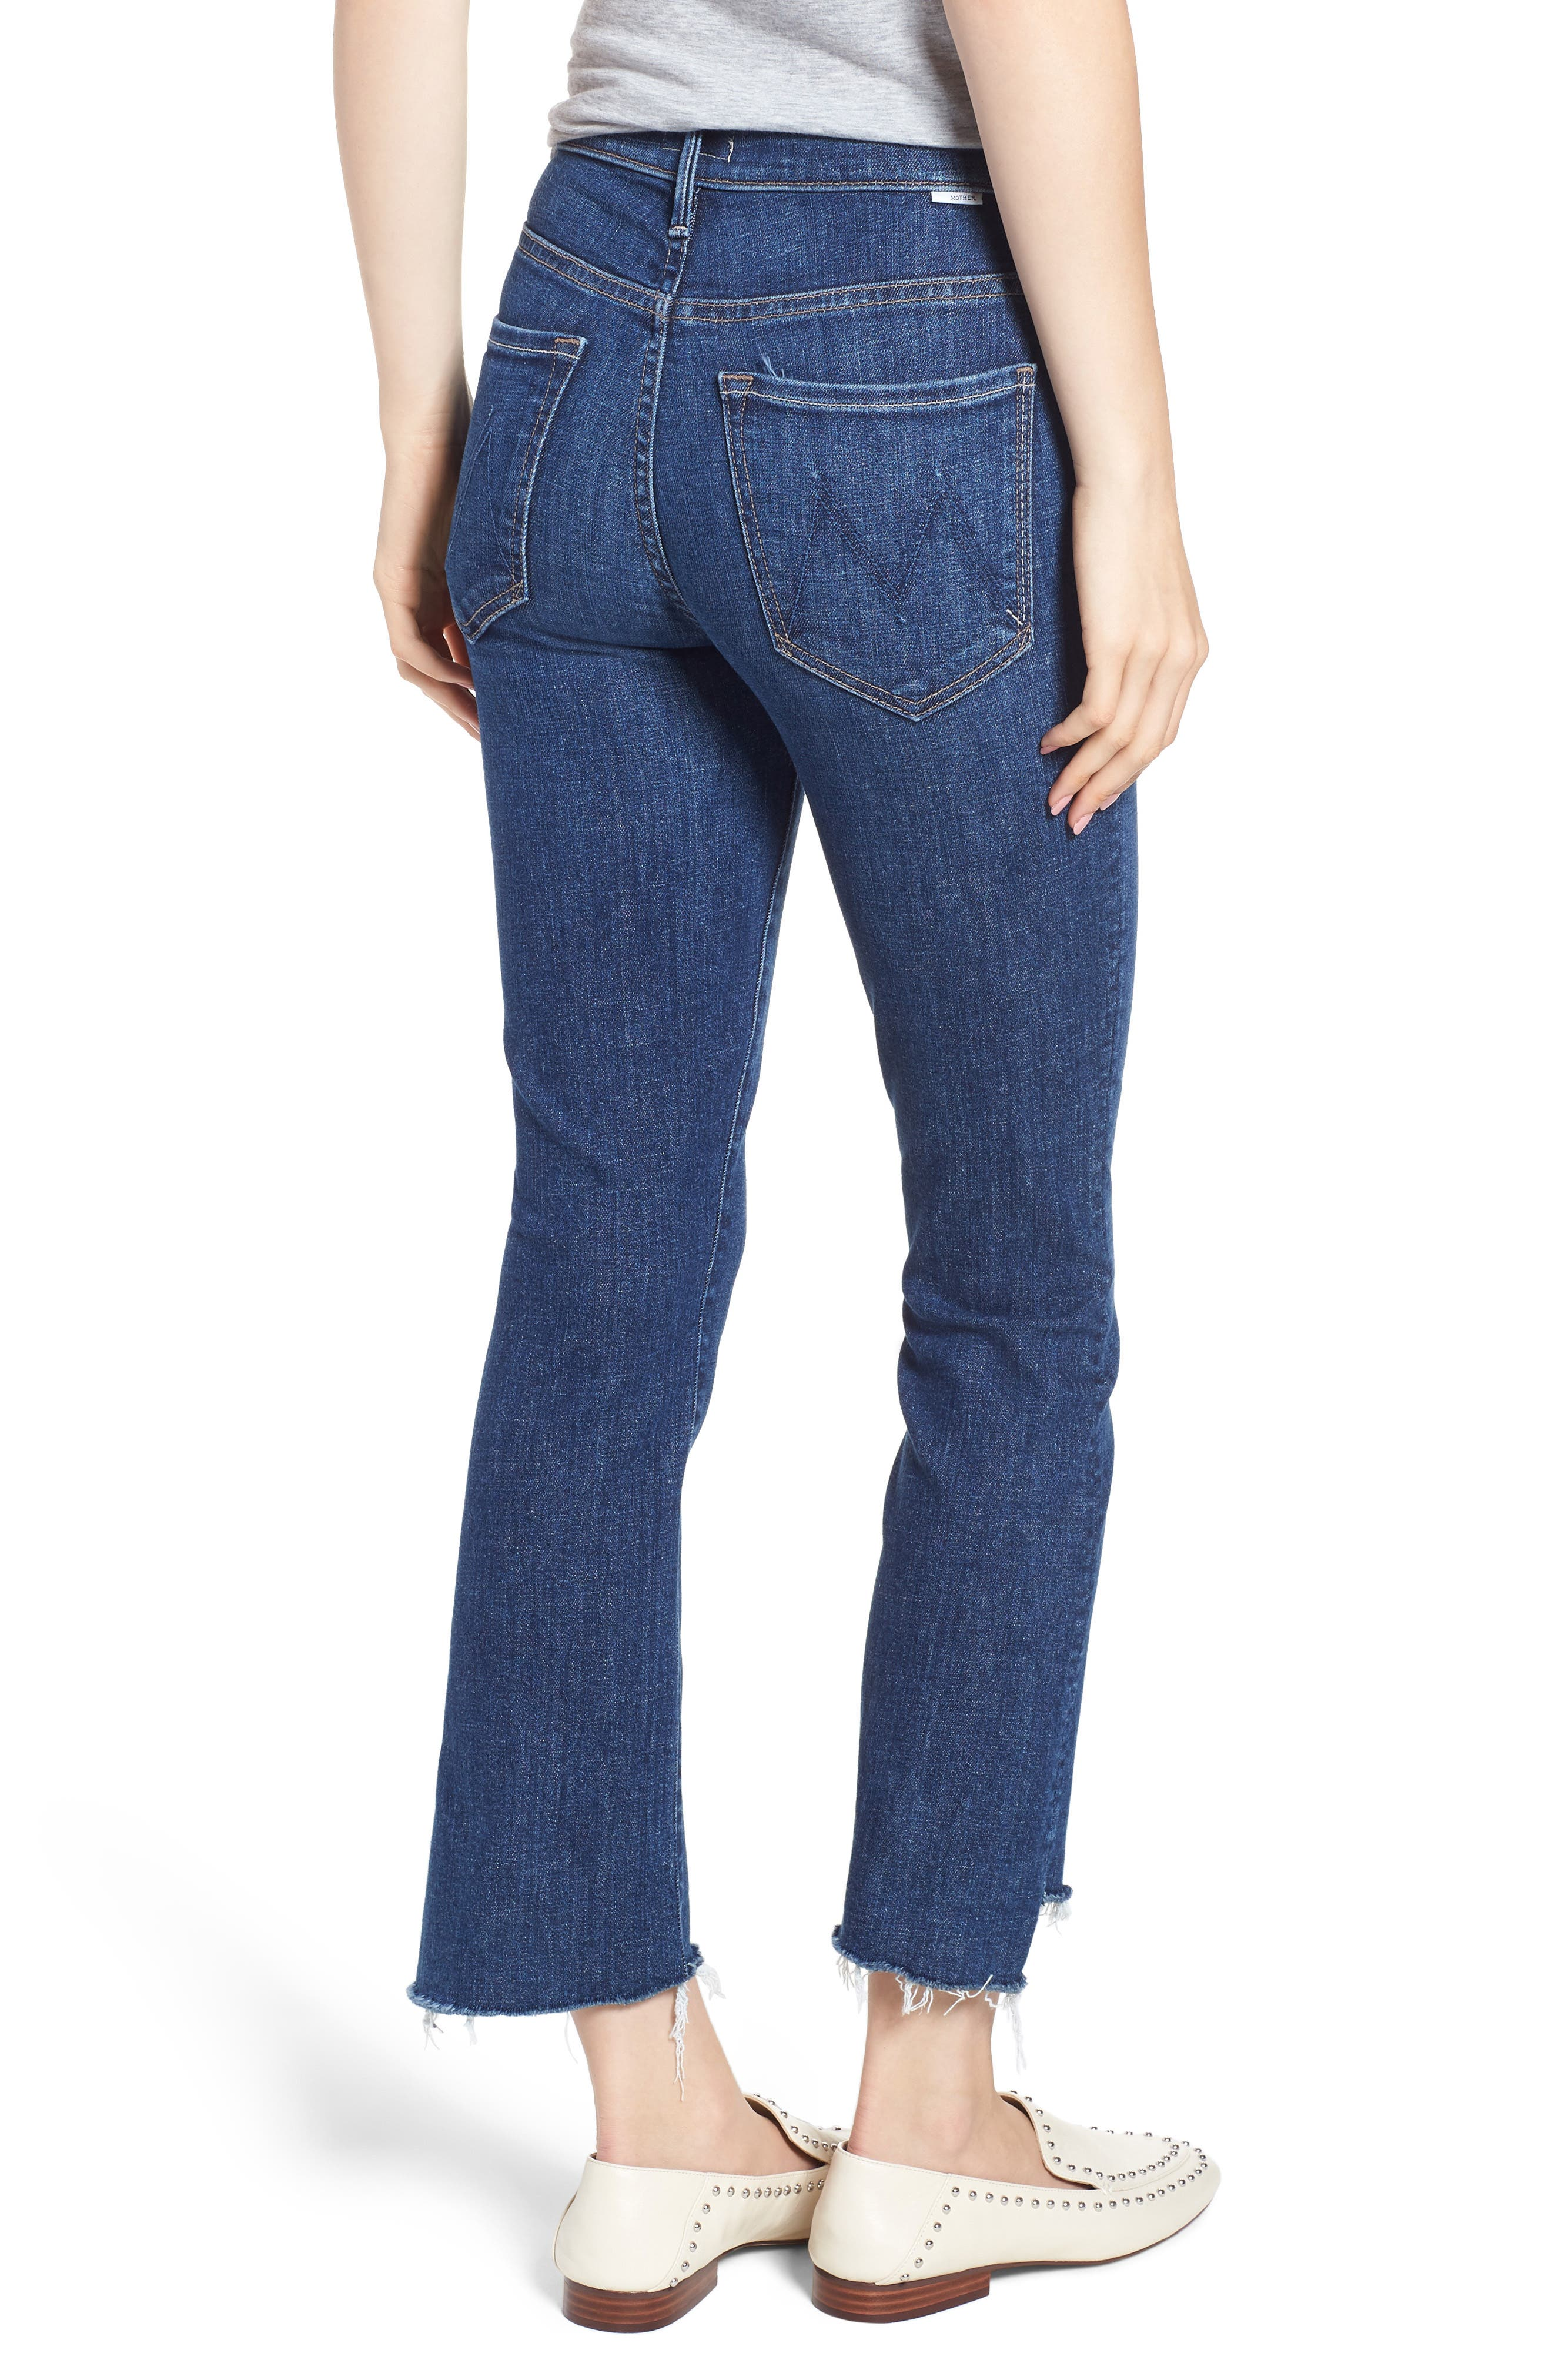 'The Insider' Crop Step Fray Jeans,                             Alternate thumbnail 2, color,                             Crushing It